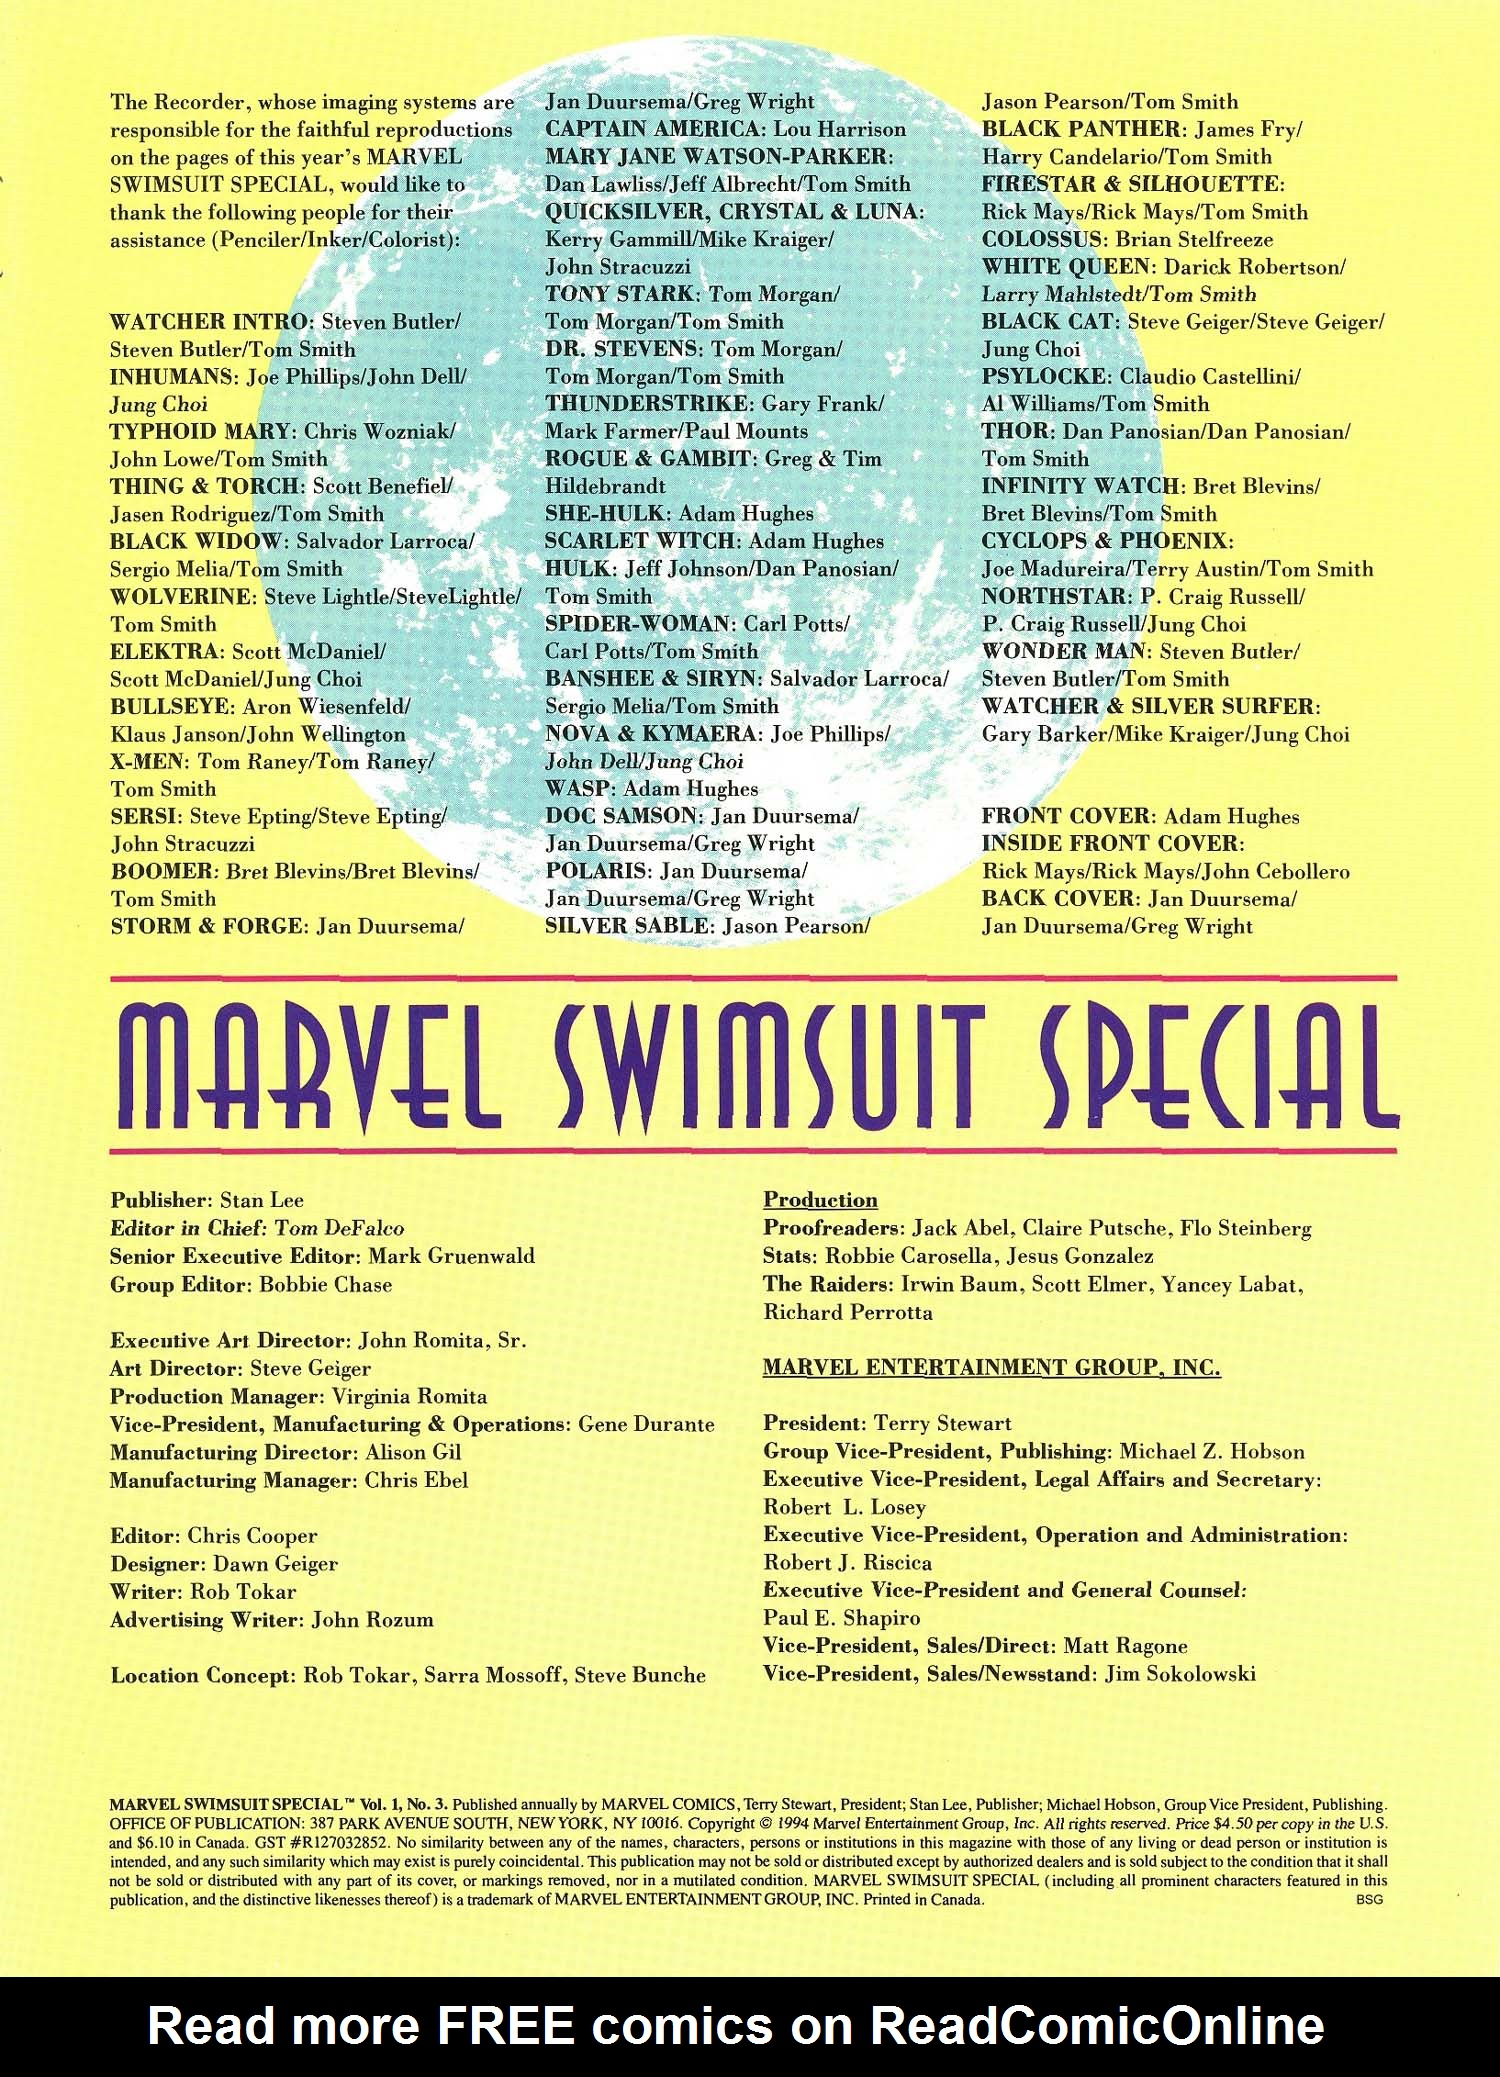 Read online Marvel Swimsuit Special comic -  Issue #3 - 3